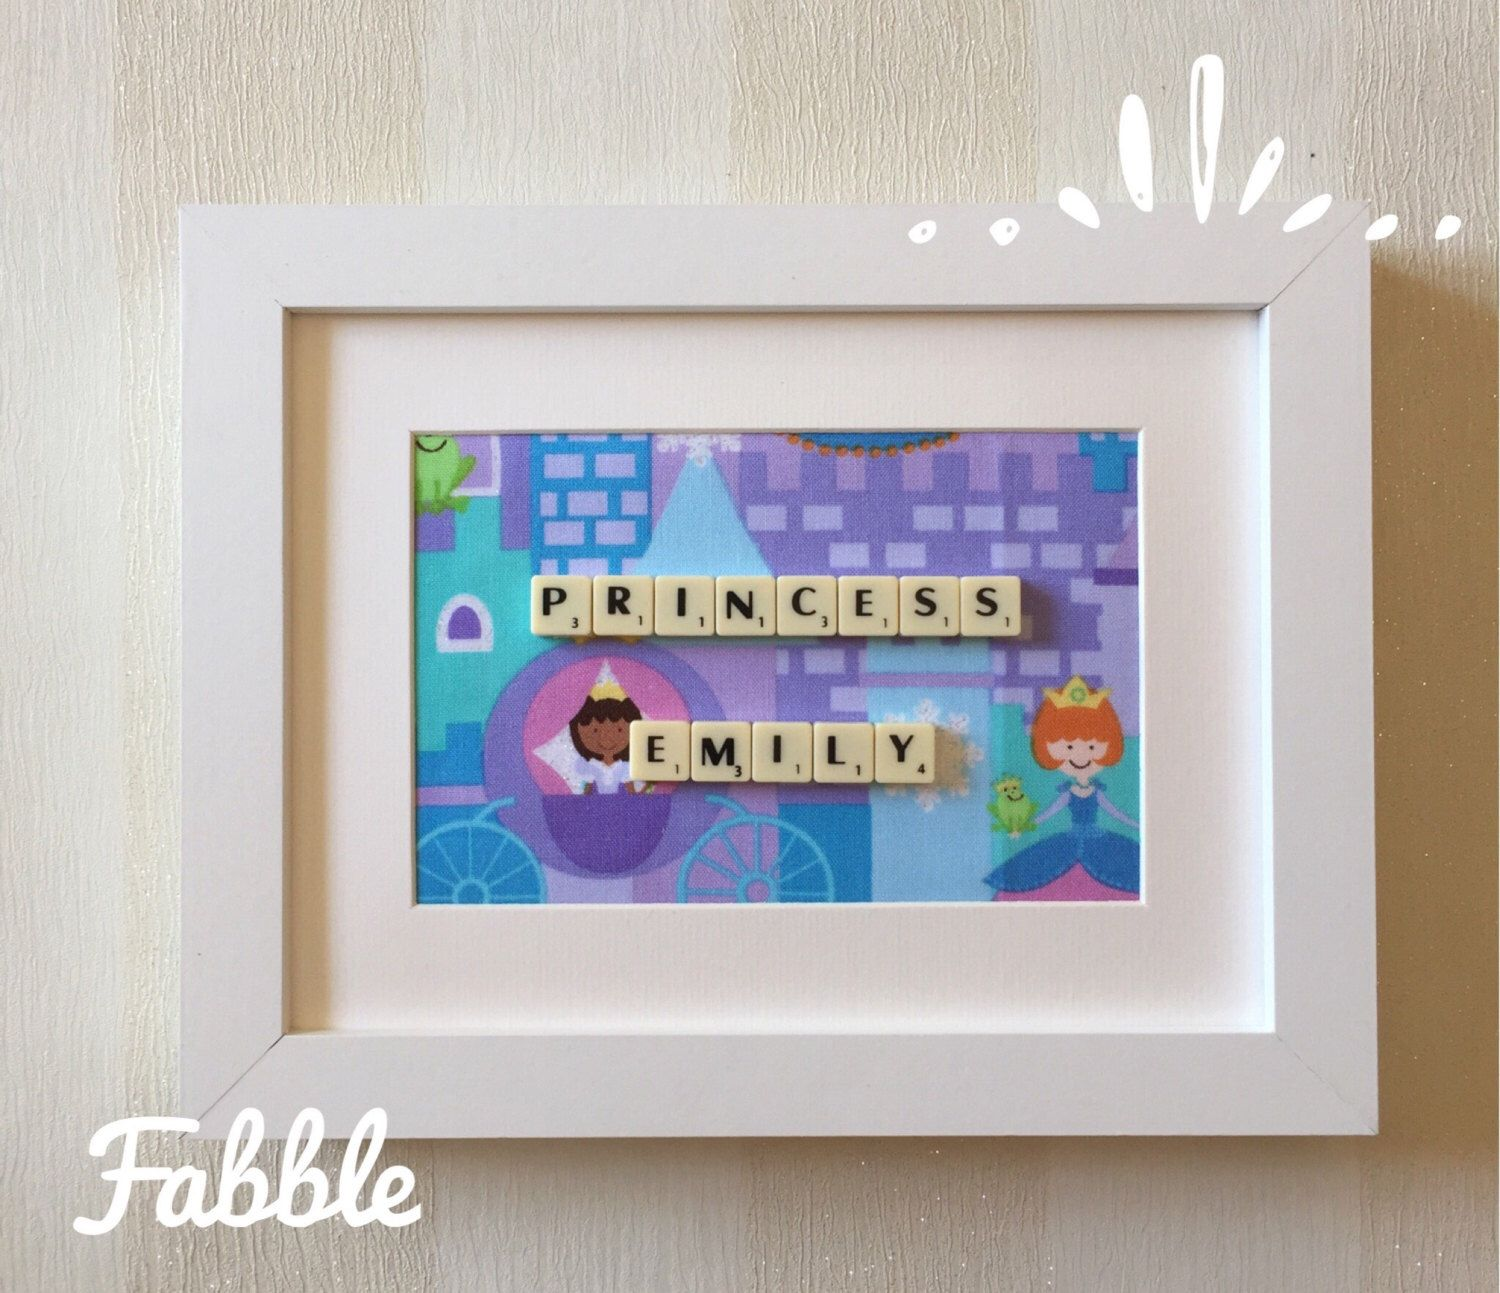 Tile Wall Decor Frozen Princess Inspired  Scrabble Tile Wall Decor  Elsa Themed